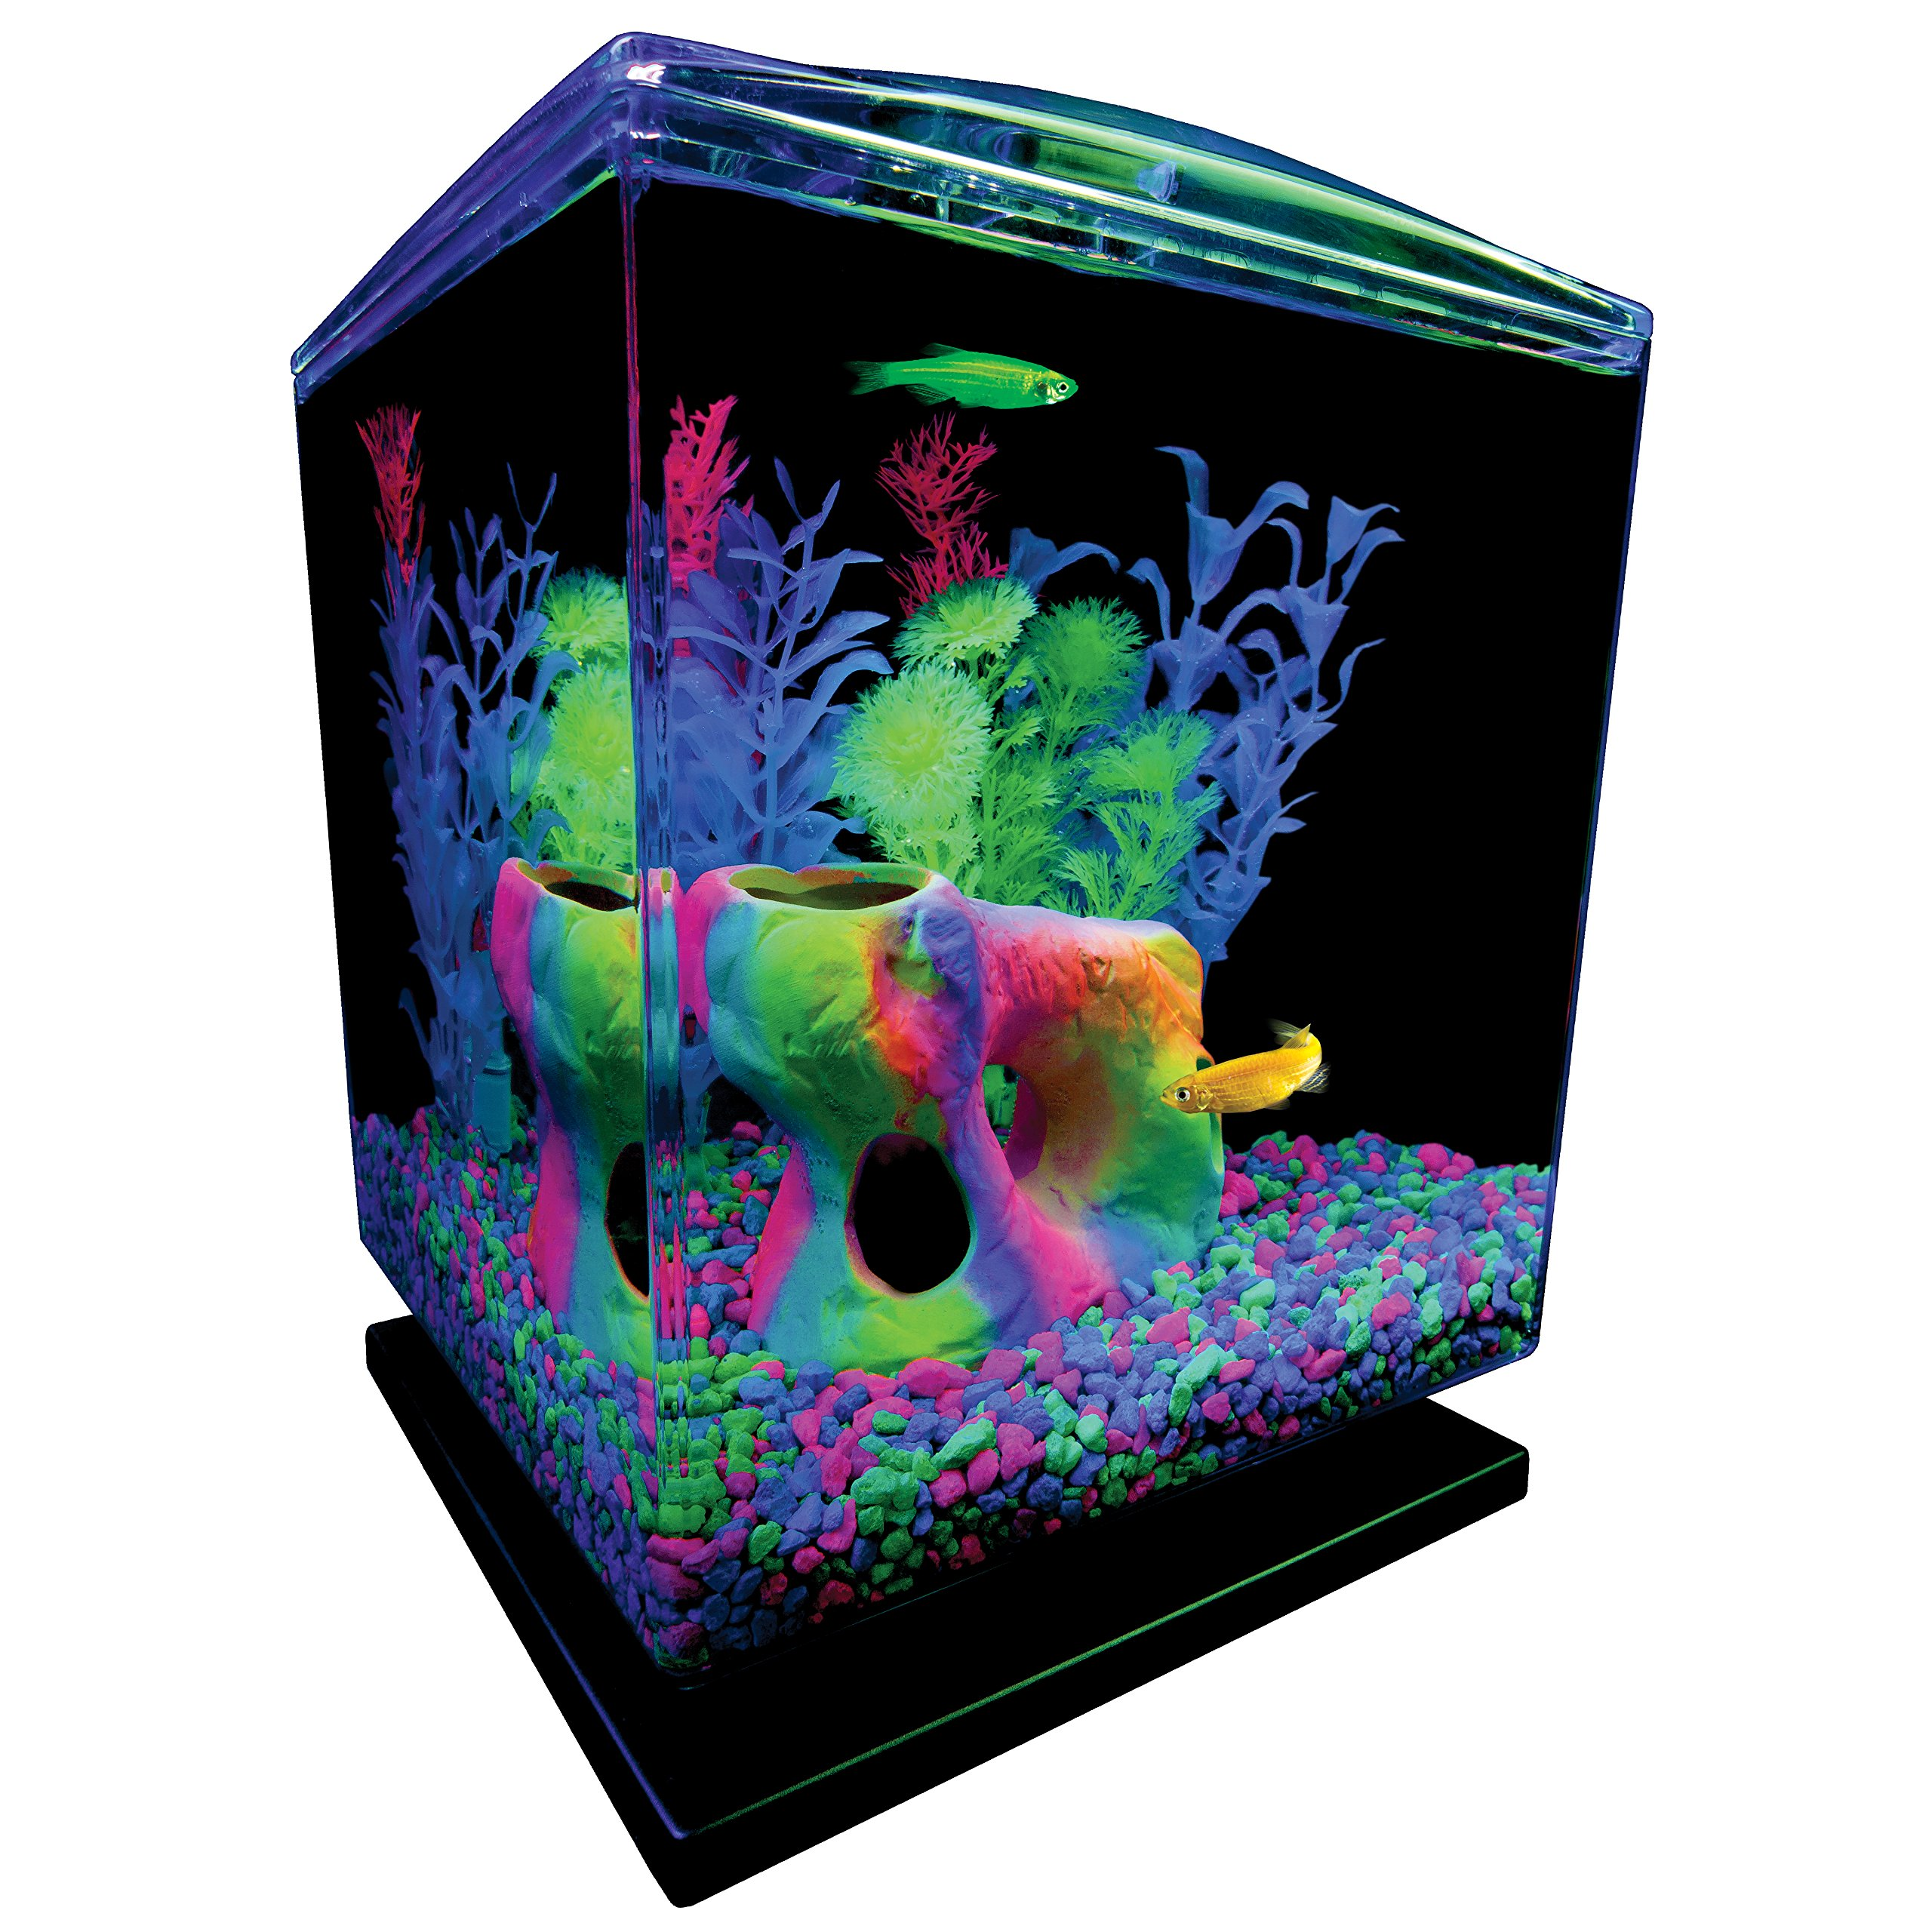 Tetra glofish mini aquarium fish tank with led light for Tetra fish tank